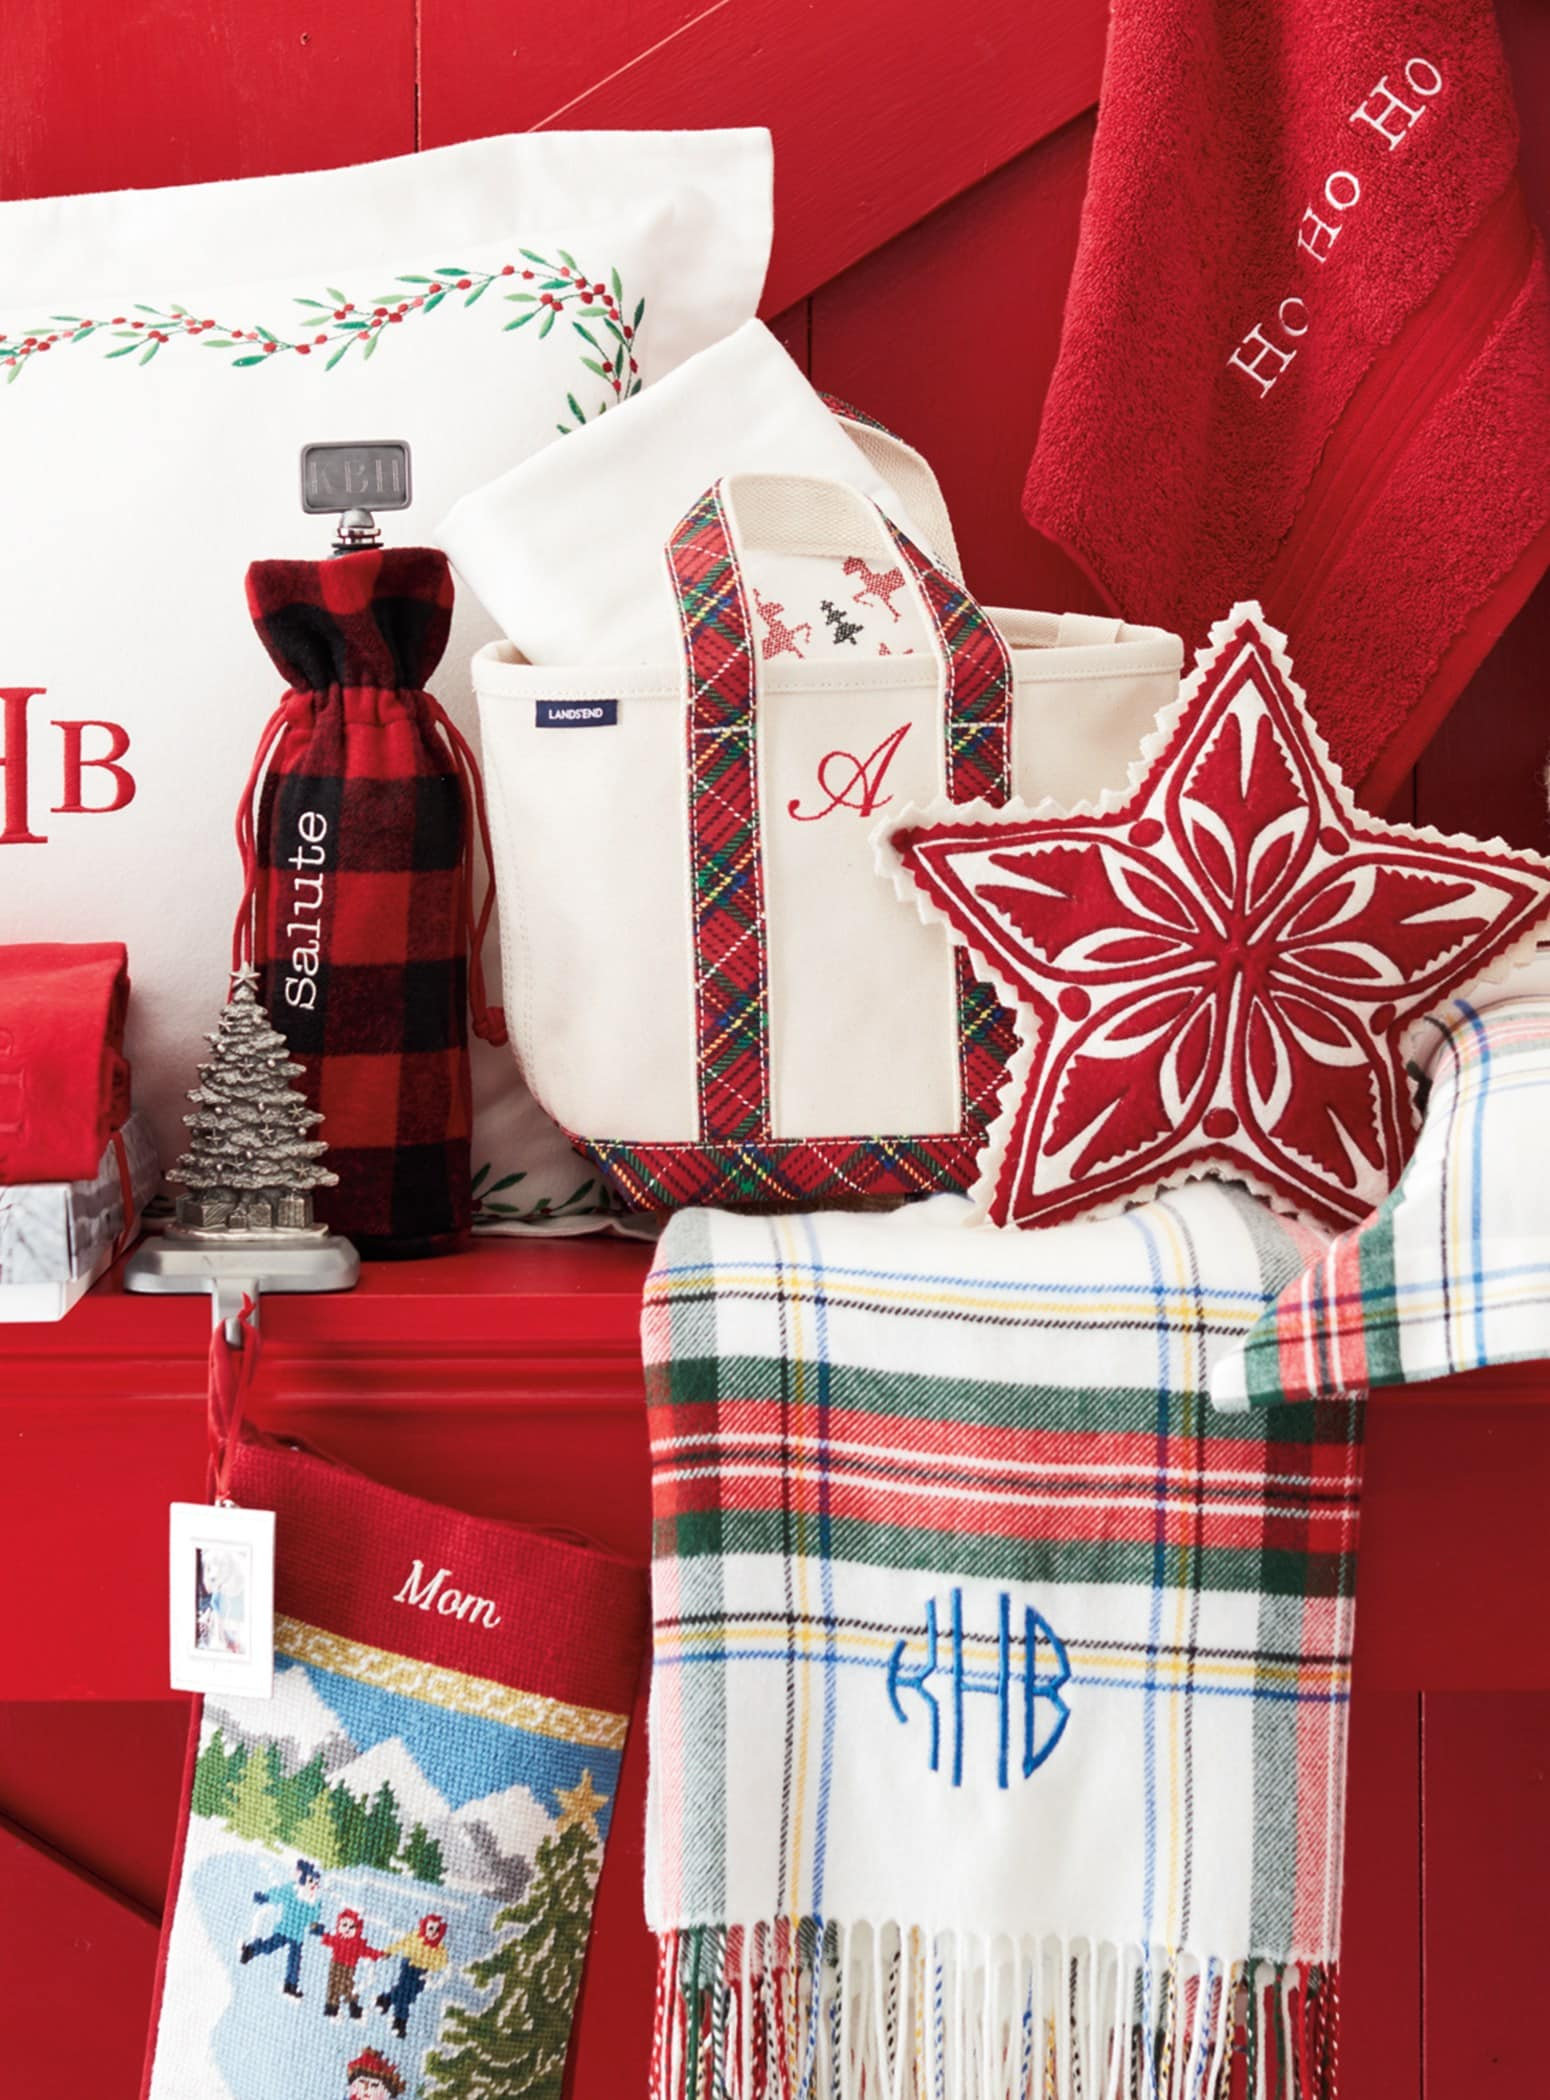 Lands' End personalized gifts ~ Santa for a Day Lands' End Discounts and Giveaways